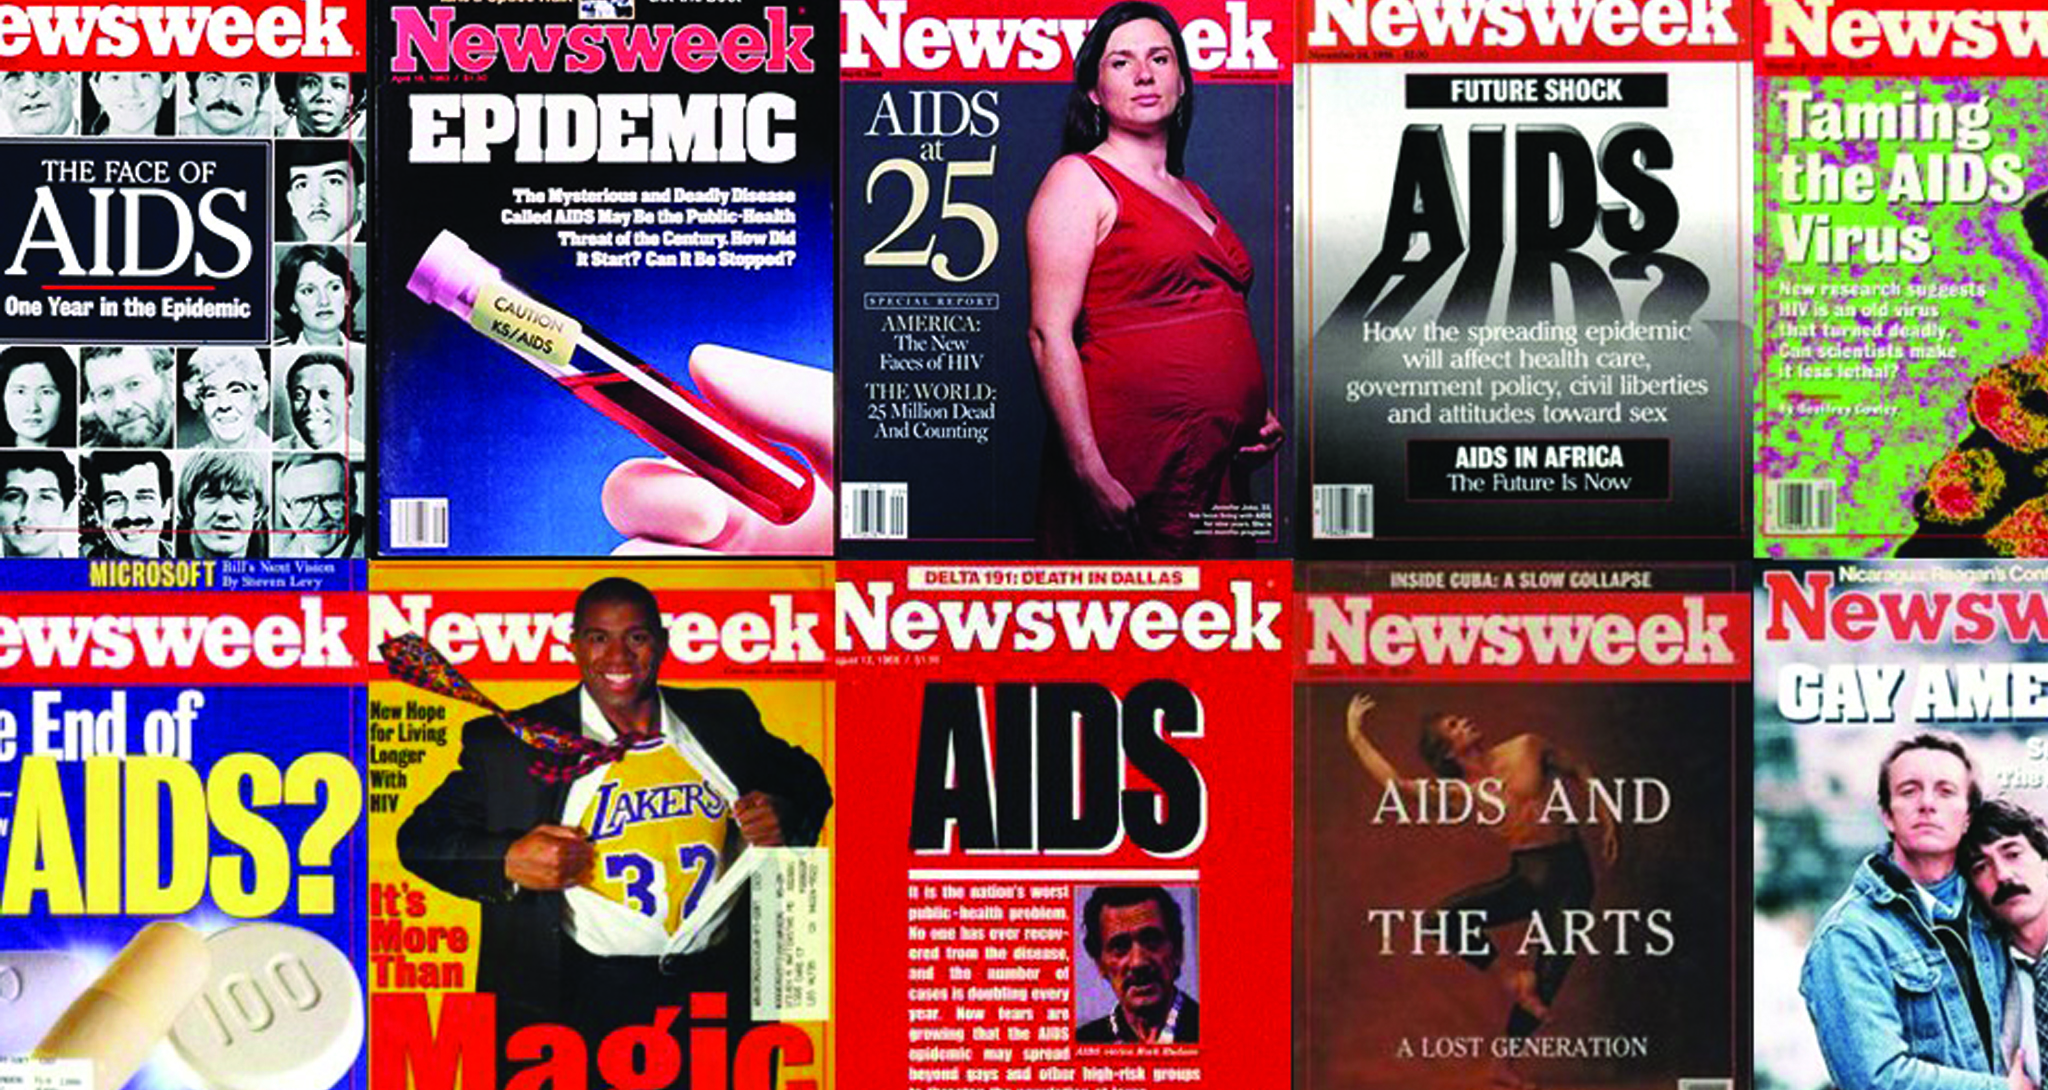 Old media coverage of HIV/AIDS